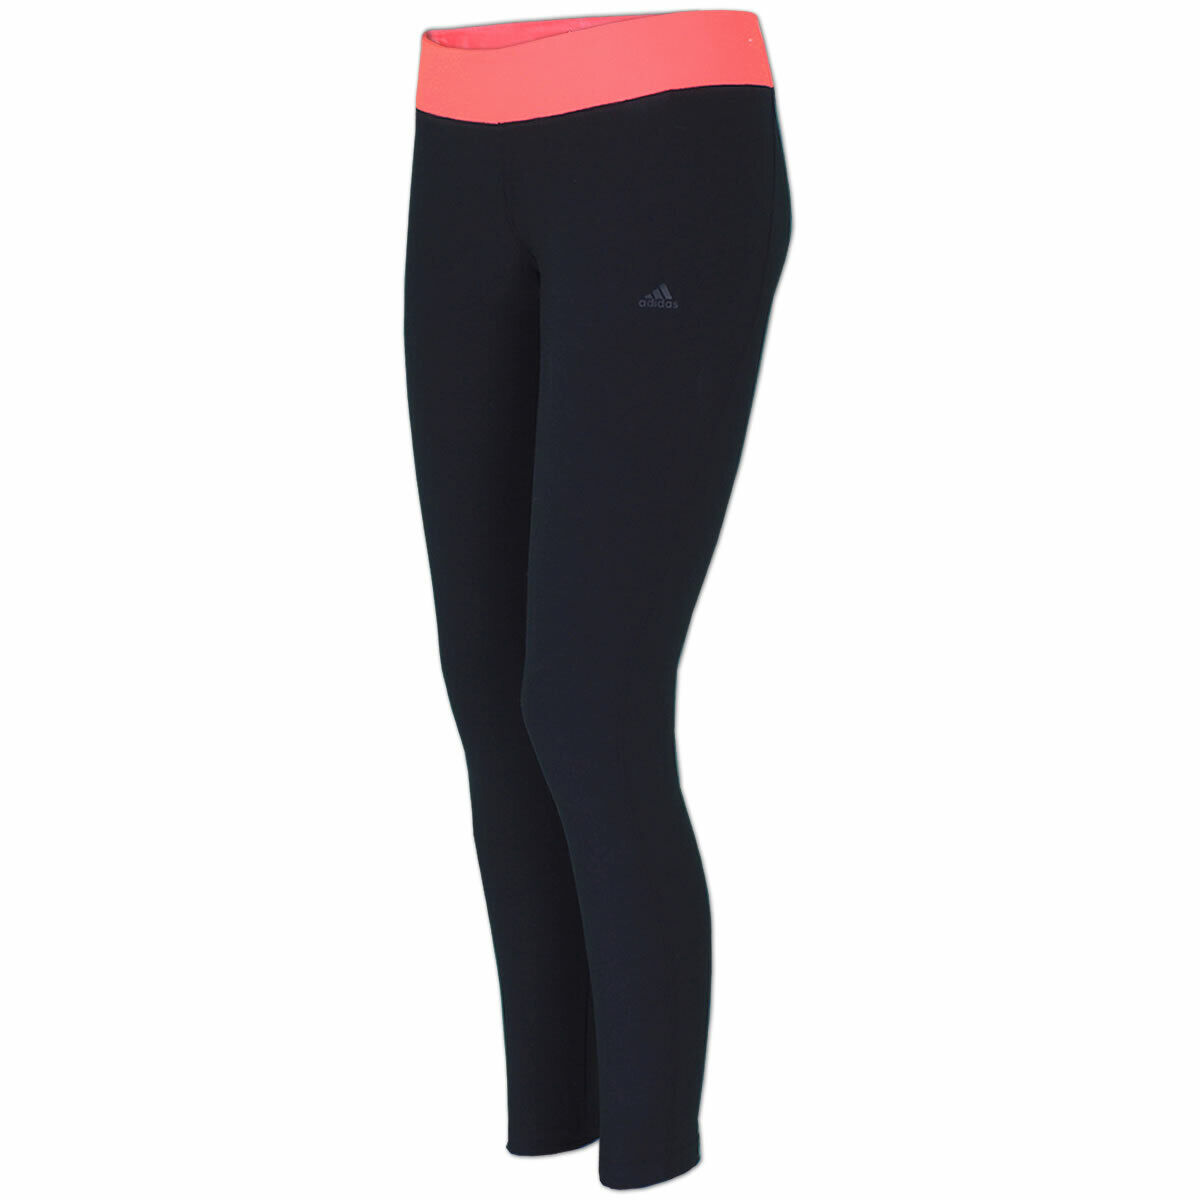 Adidas DaSie Ultimate Tight ClimaLite Laufhose Laufen Fitness Hose